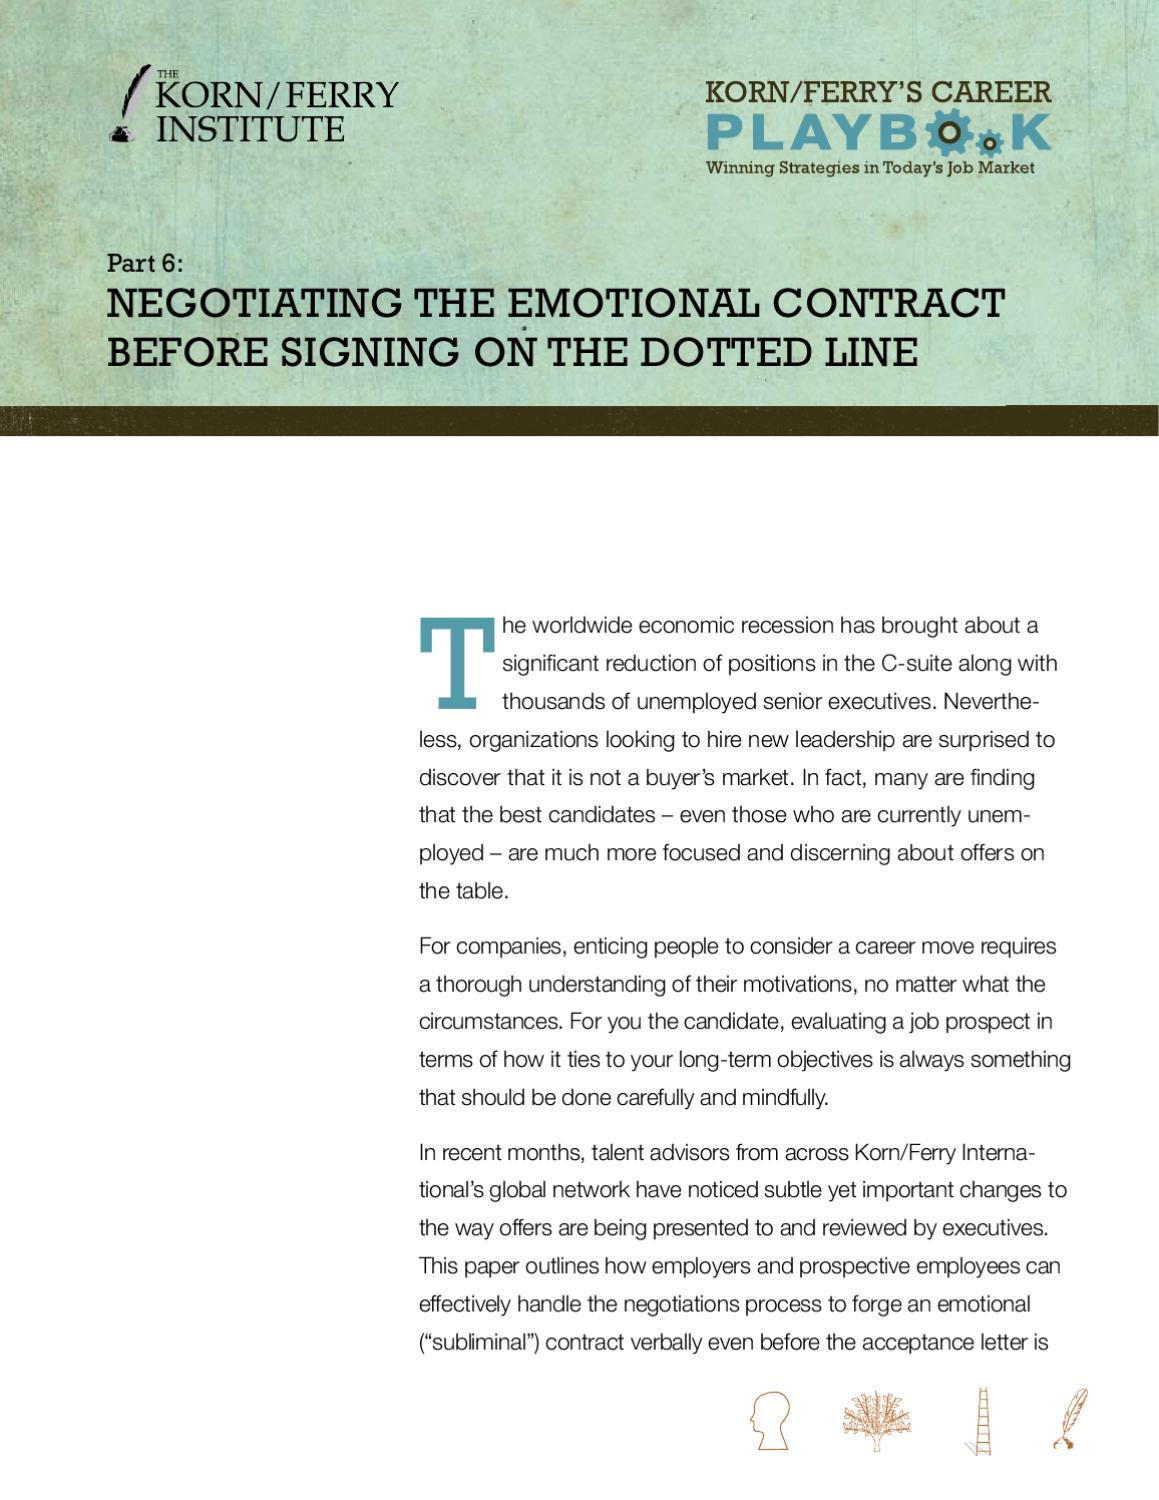 Careful Signing Employment Contract | Negotiating The Emotional Contract Before Signing On The Dotted Line